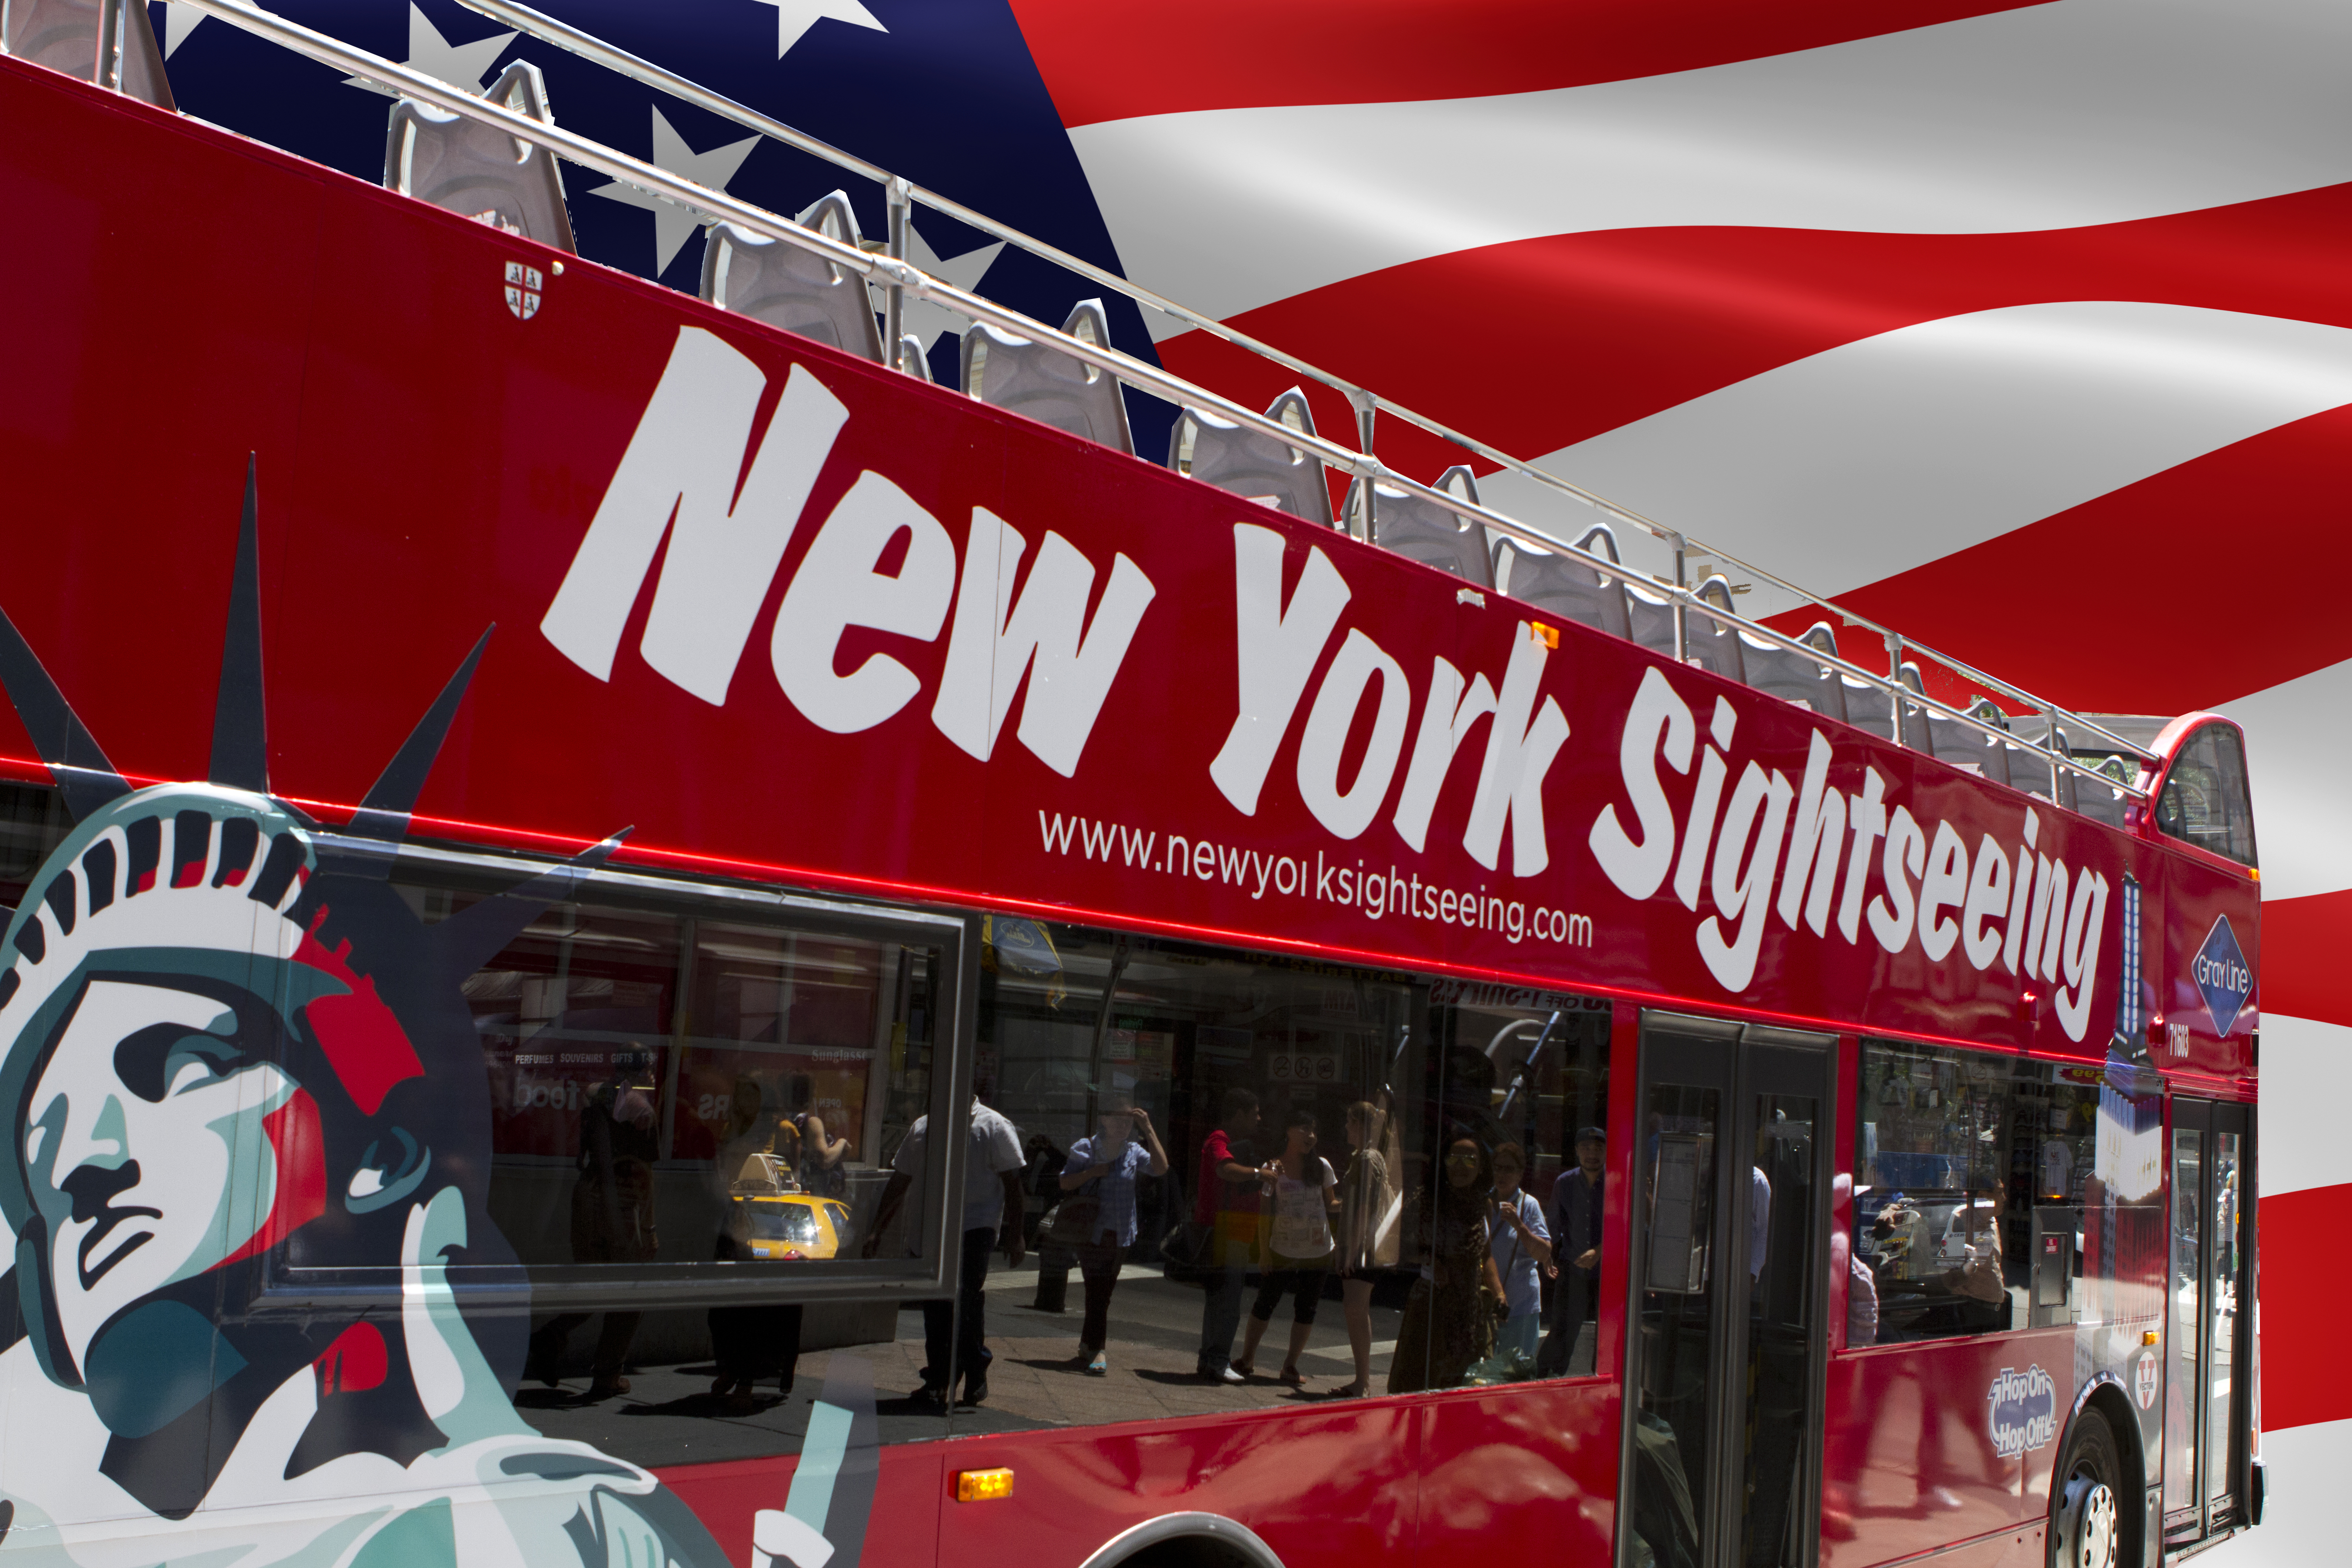 No matter how you do it, New York City sightseeing will be a powerful experience. Some might want to explore American history with sites like the Statue of Liberty and Ground Zero, while others might prefer to have a fun-filled trip with museums and theater.